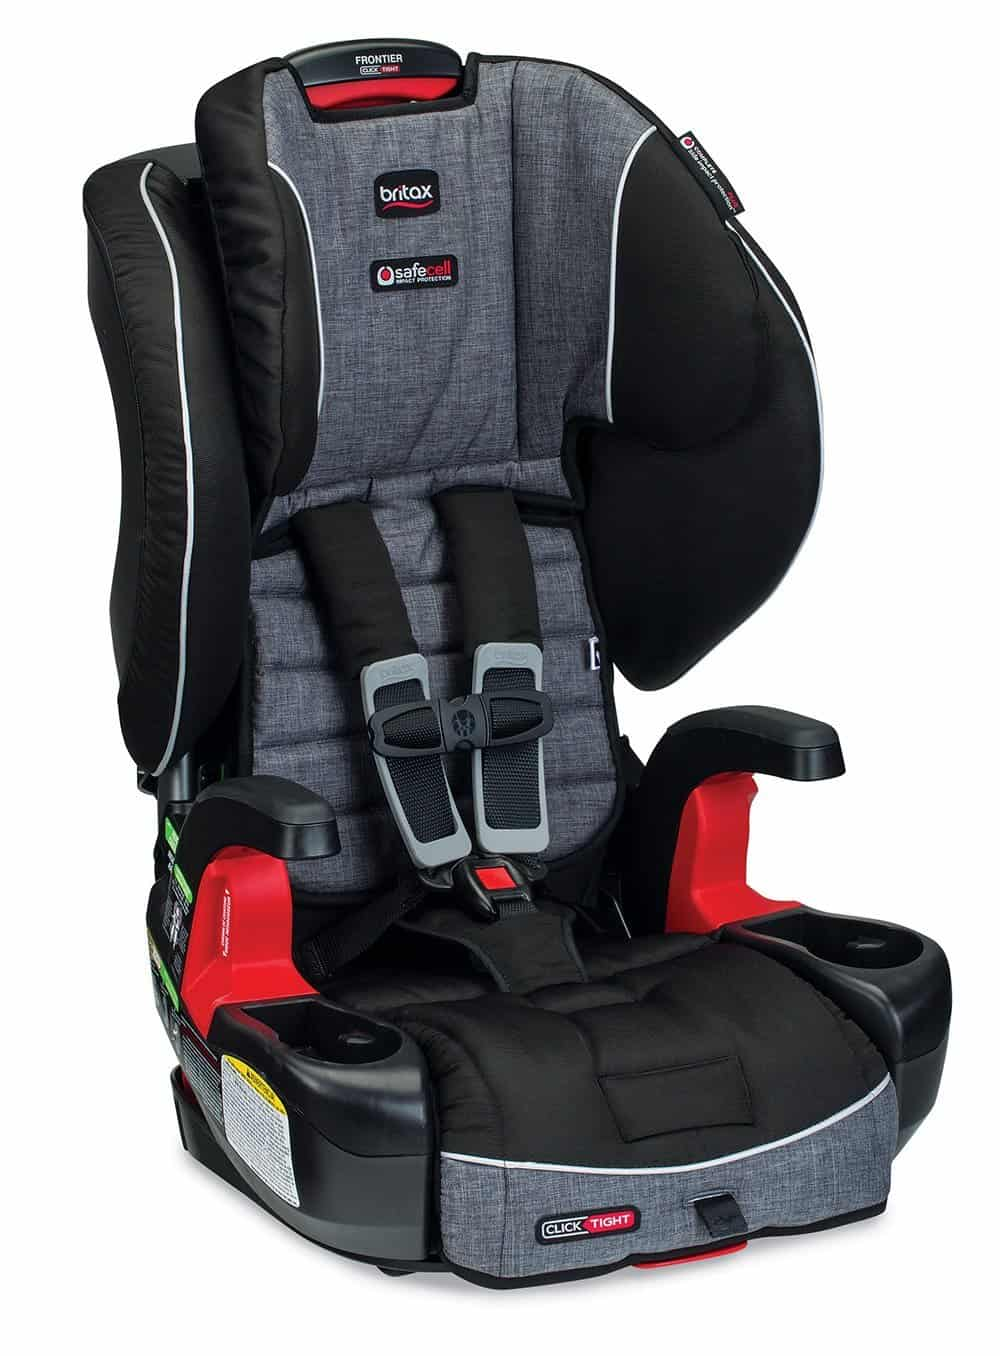 Booster Car Seat review: Britax Frontier ClickTight